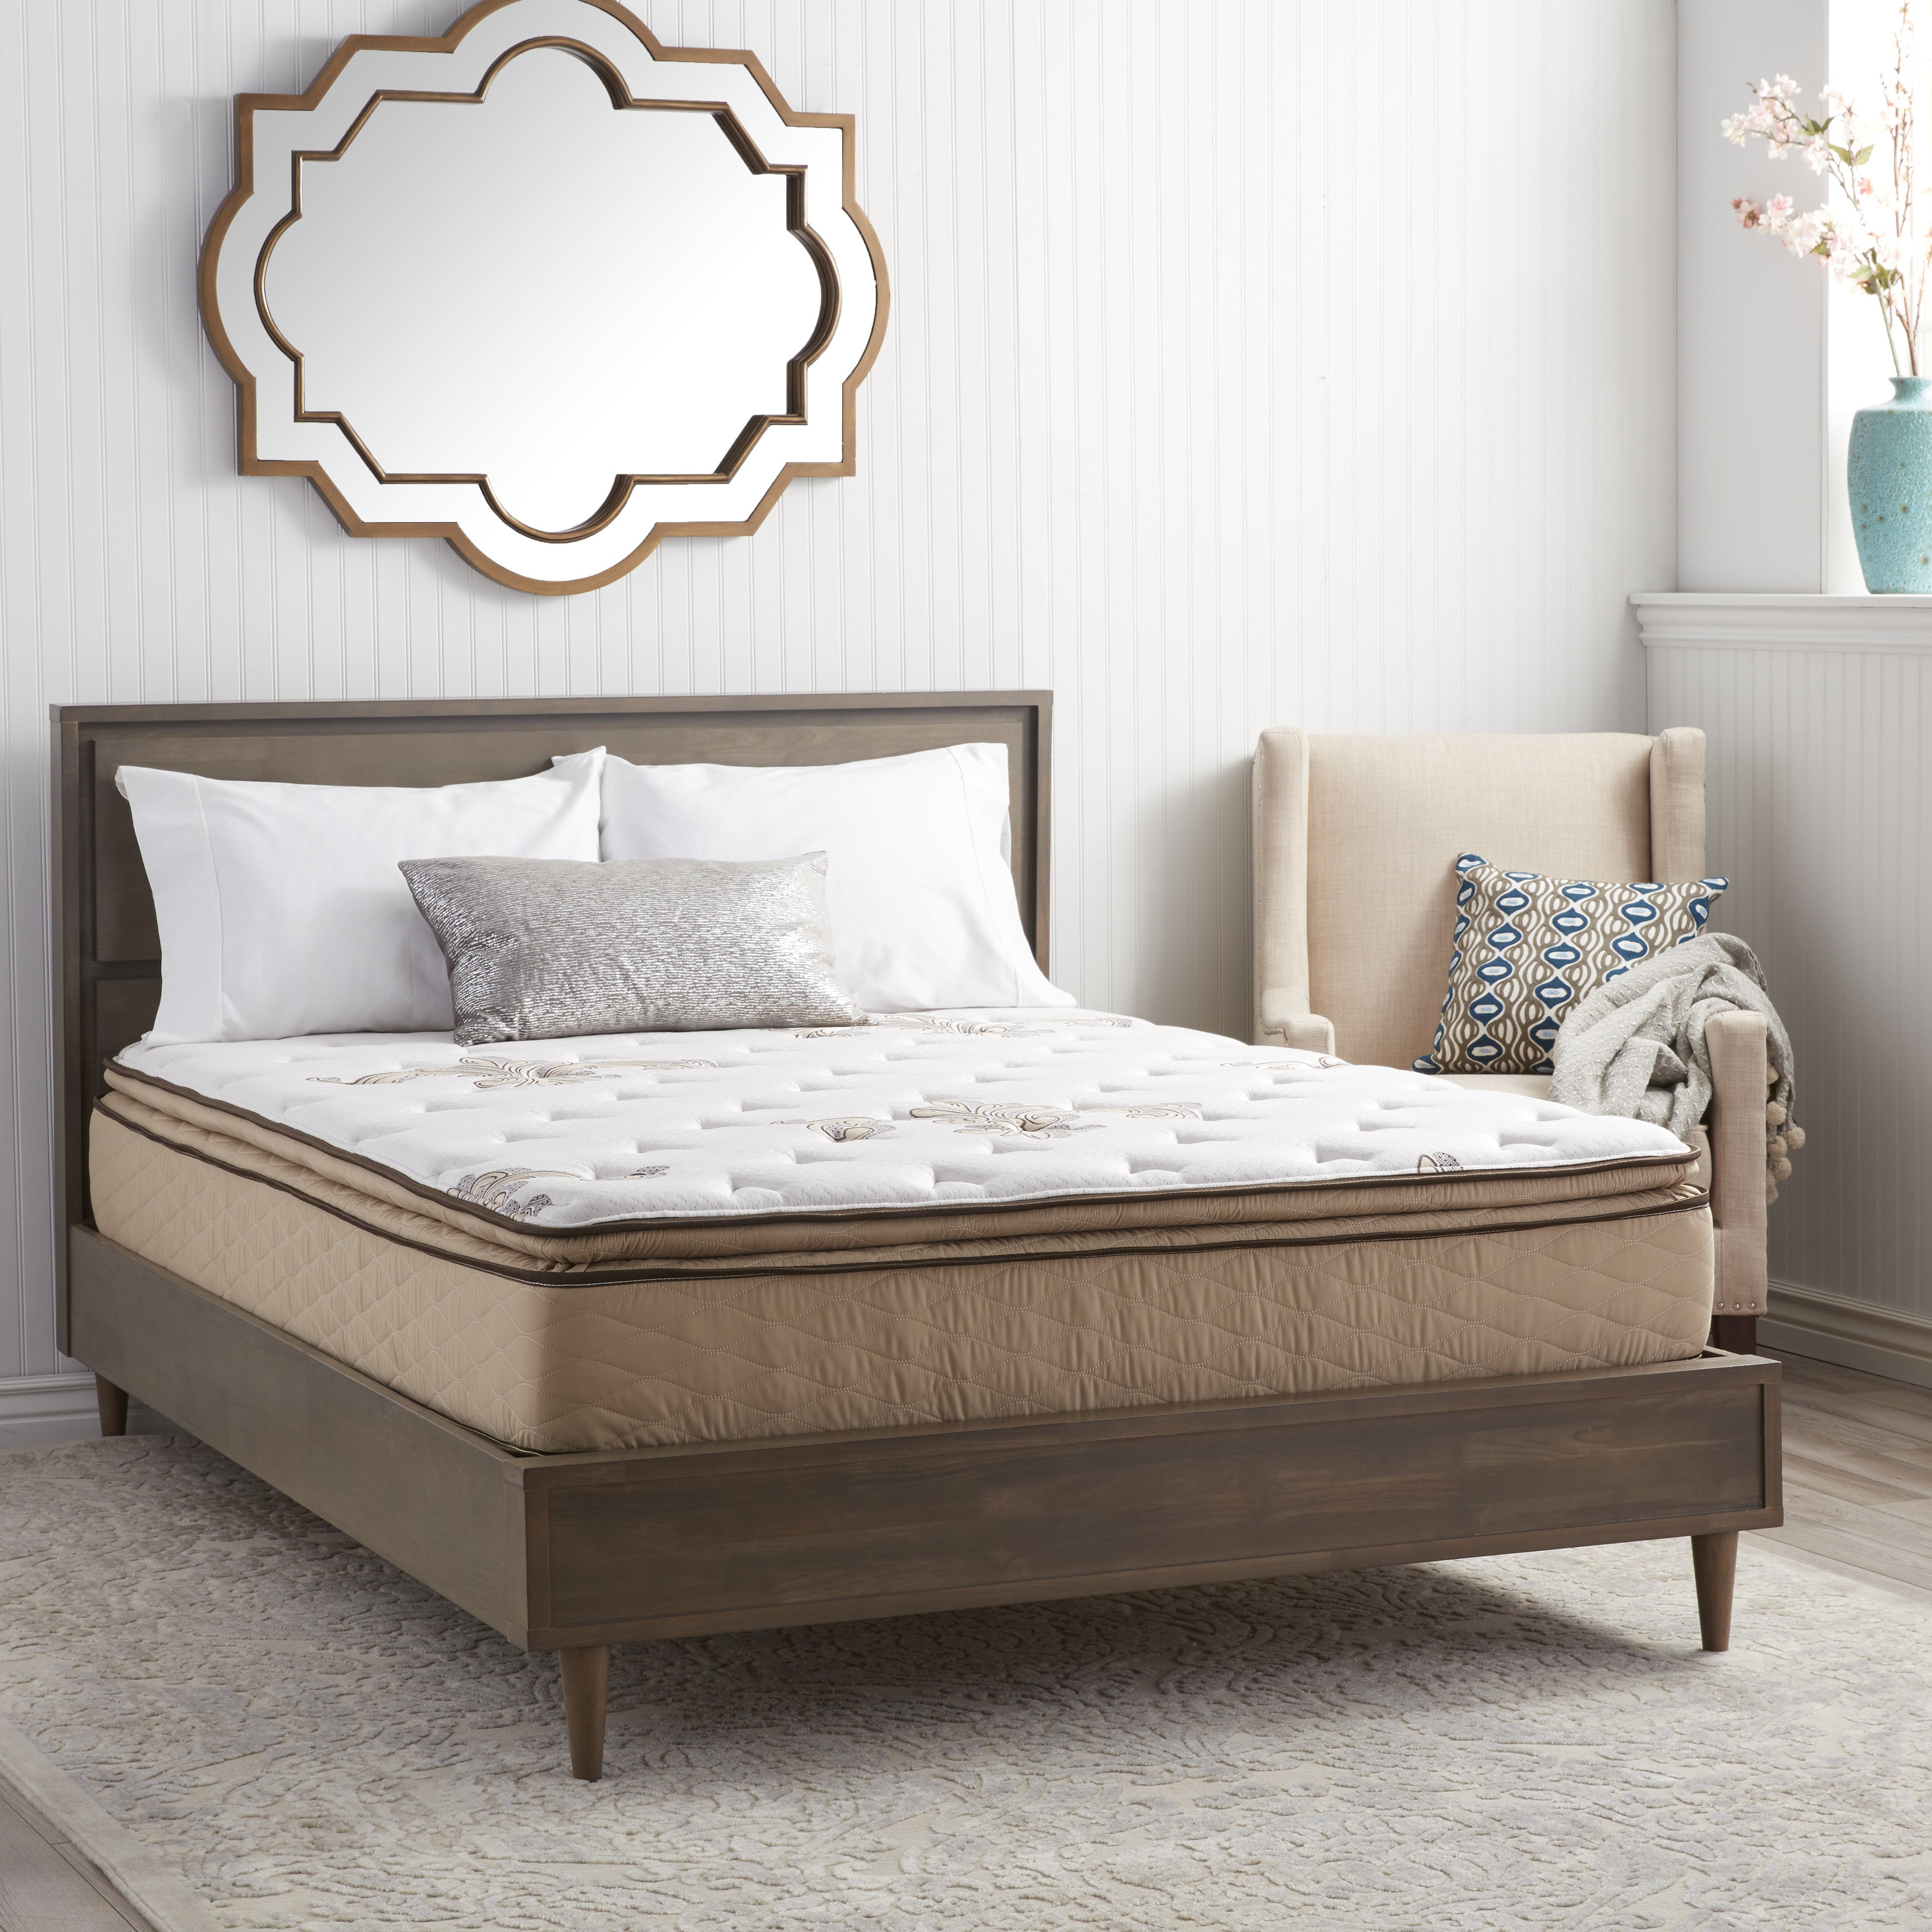 NuForm Quilted Pillow Top 11-inch King-size Foam Mattress...